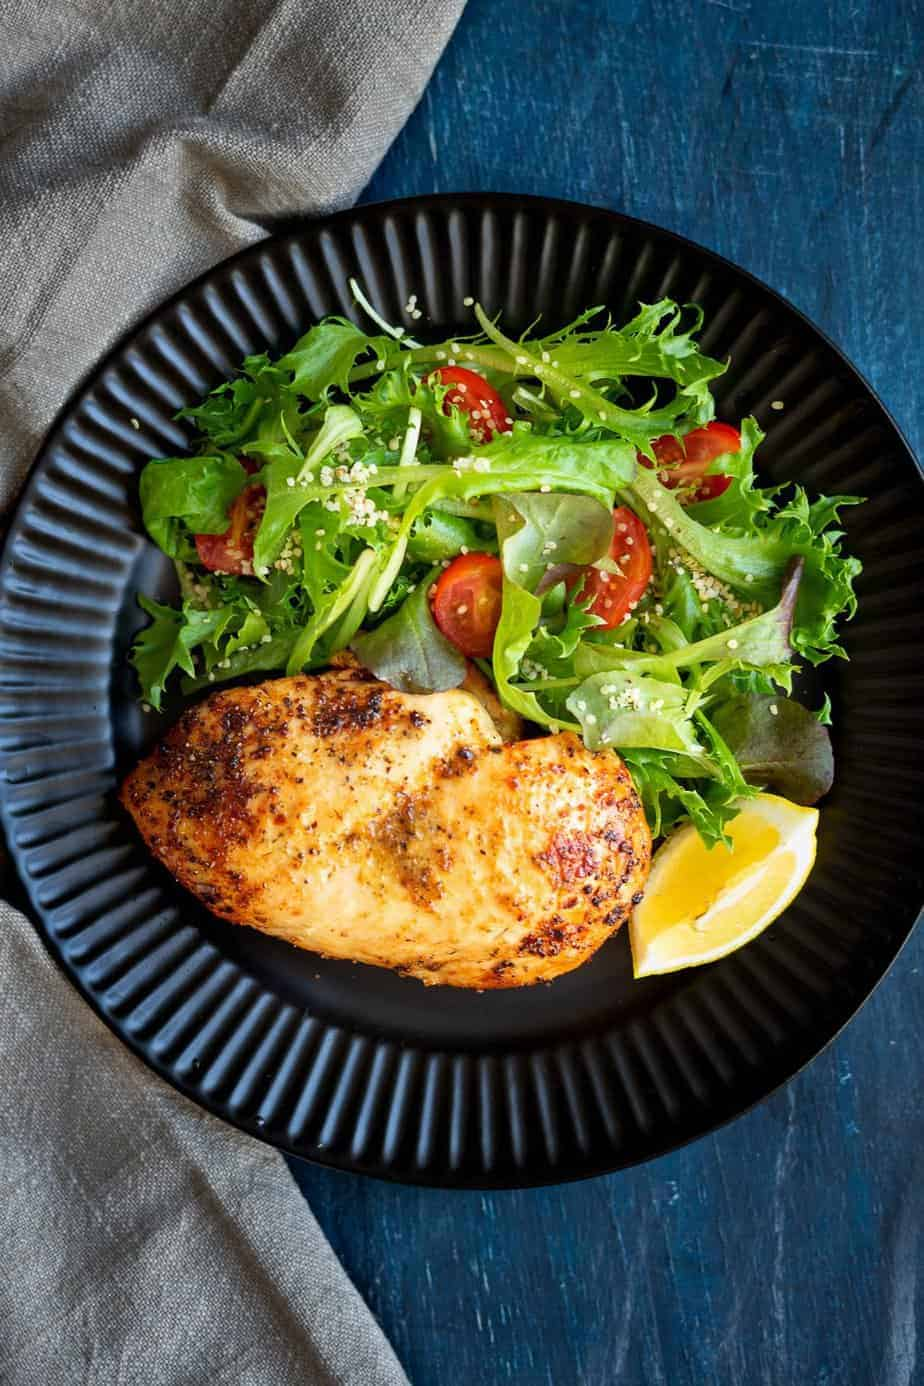 Excellently cooked frozen chicken breast served with a salad of baby lettuces blend and cherry tomatoes.